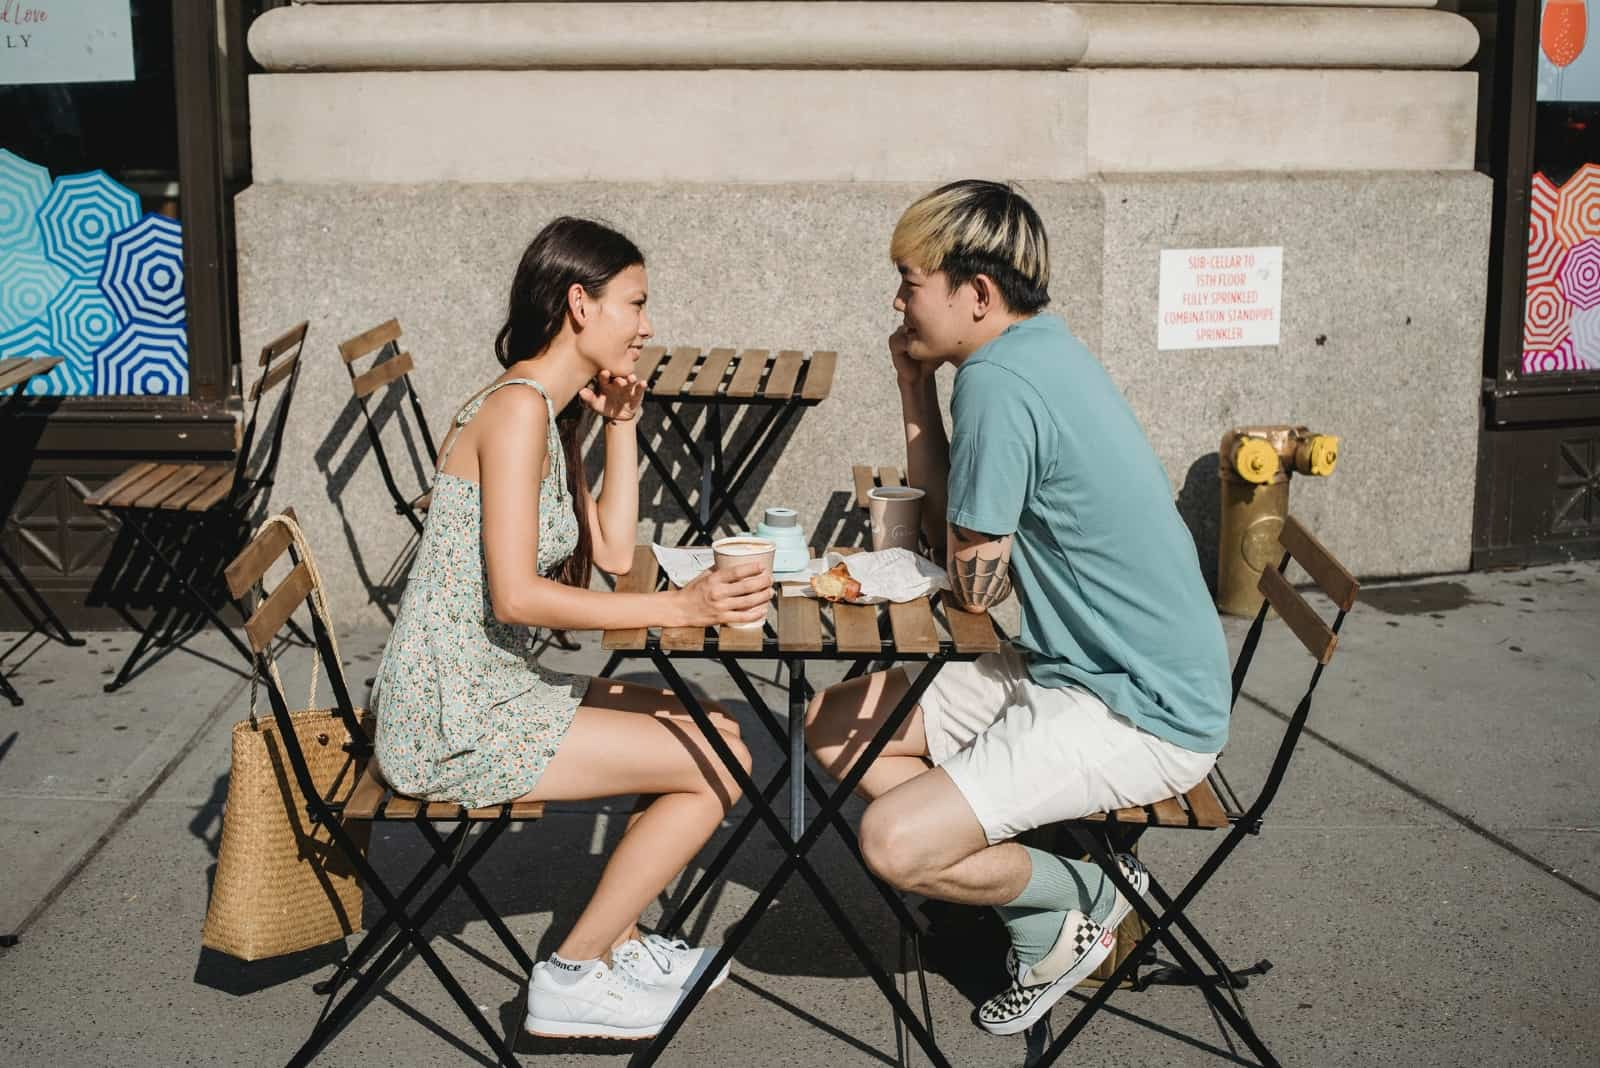 man and woman making eye contact while sitting at table outdoor